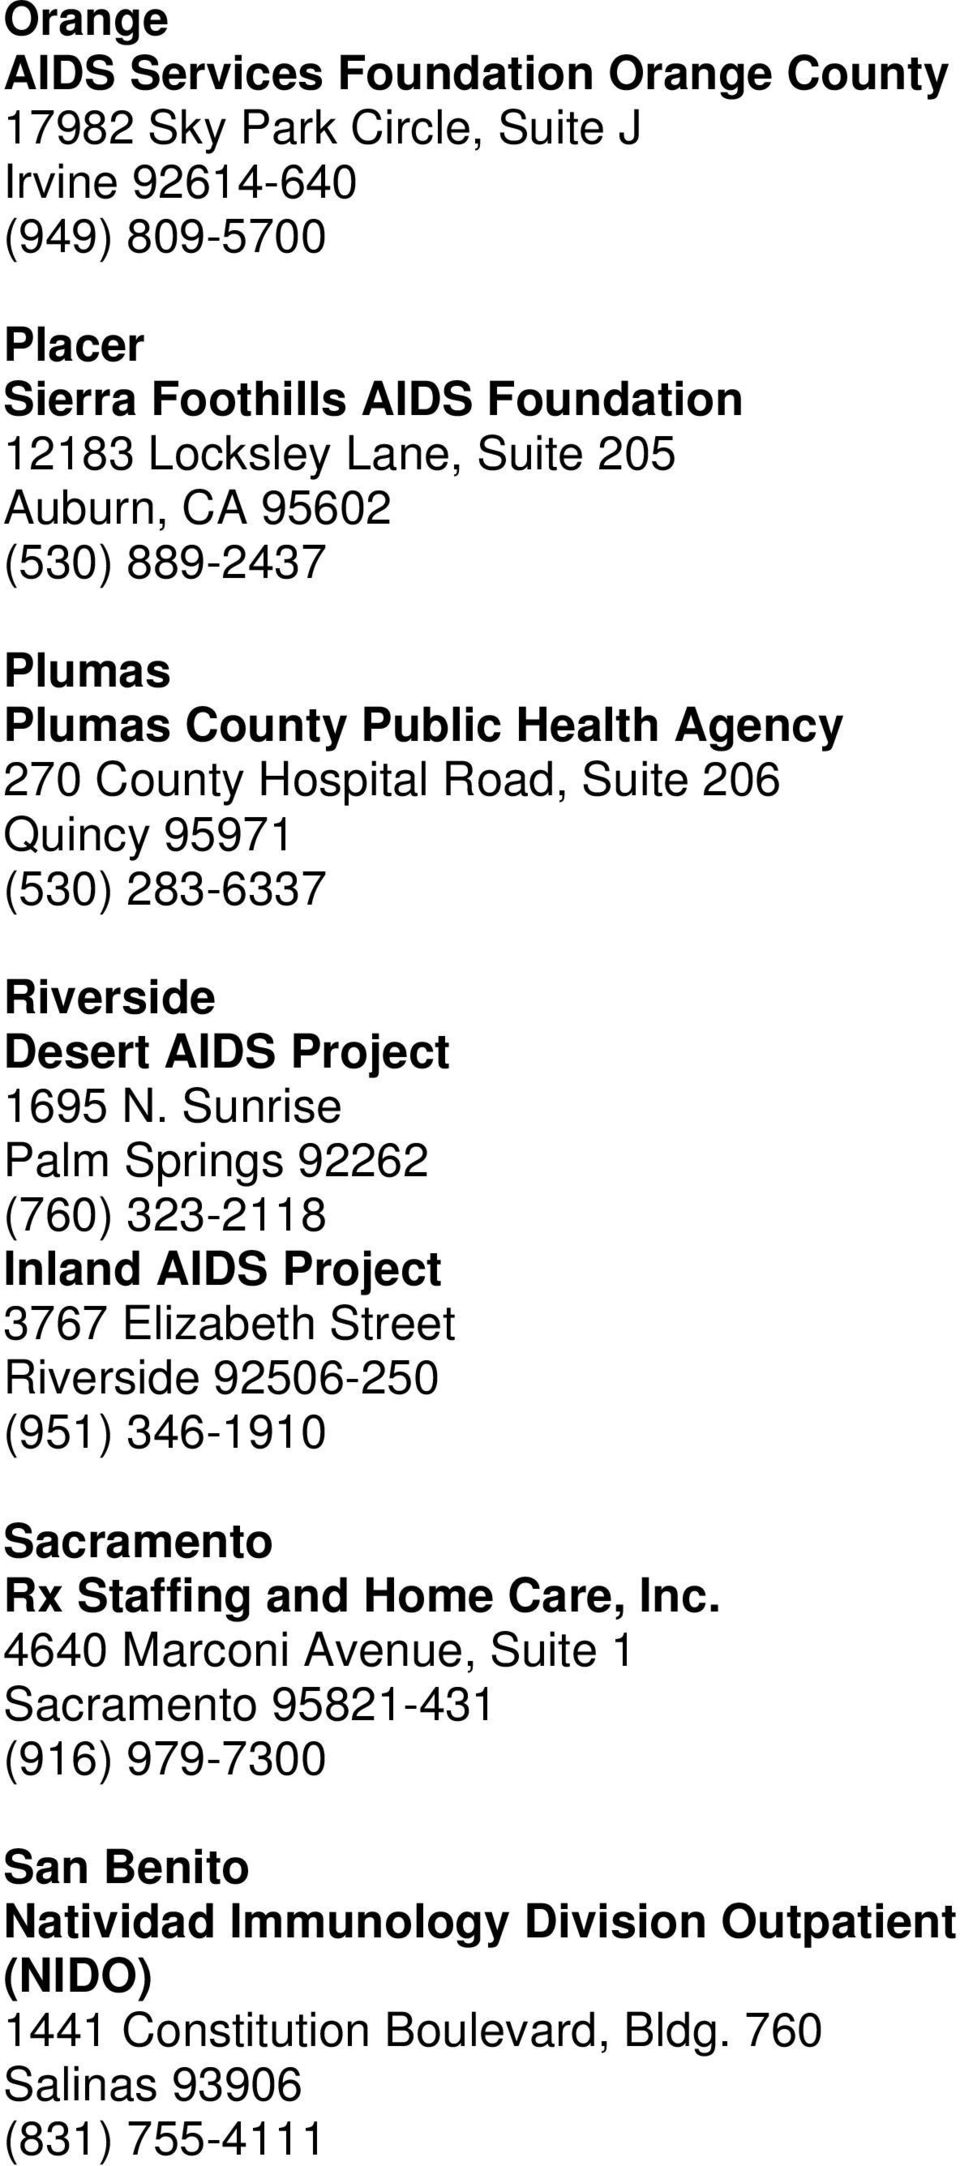 N. Sunrise Palm Springs 92262 (760) 323-2118 Inland AIDS Project 3767 Elizabeth Street Riverside 92506-250 (951) 346-1910 Sacramento Rx Staffing and Home Care, Inc.